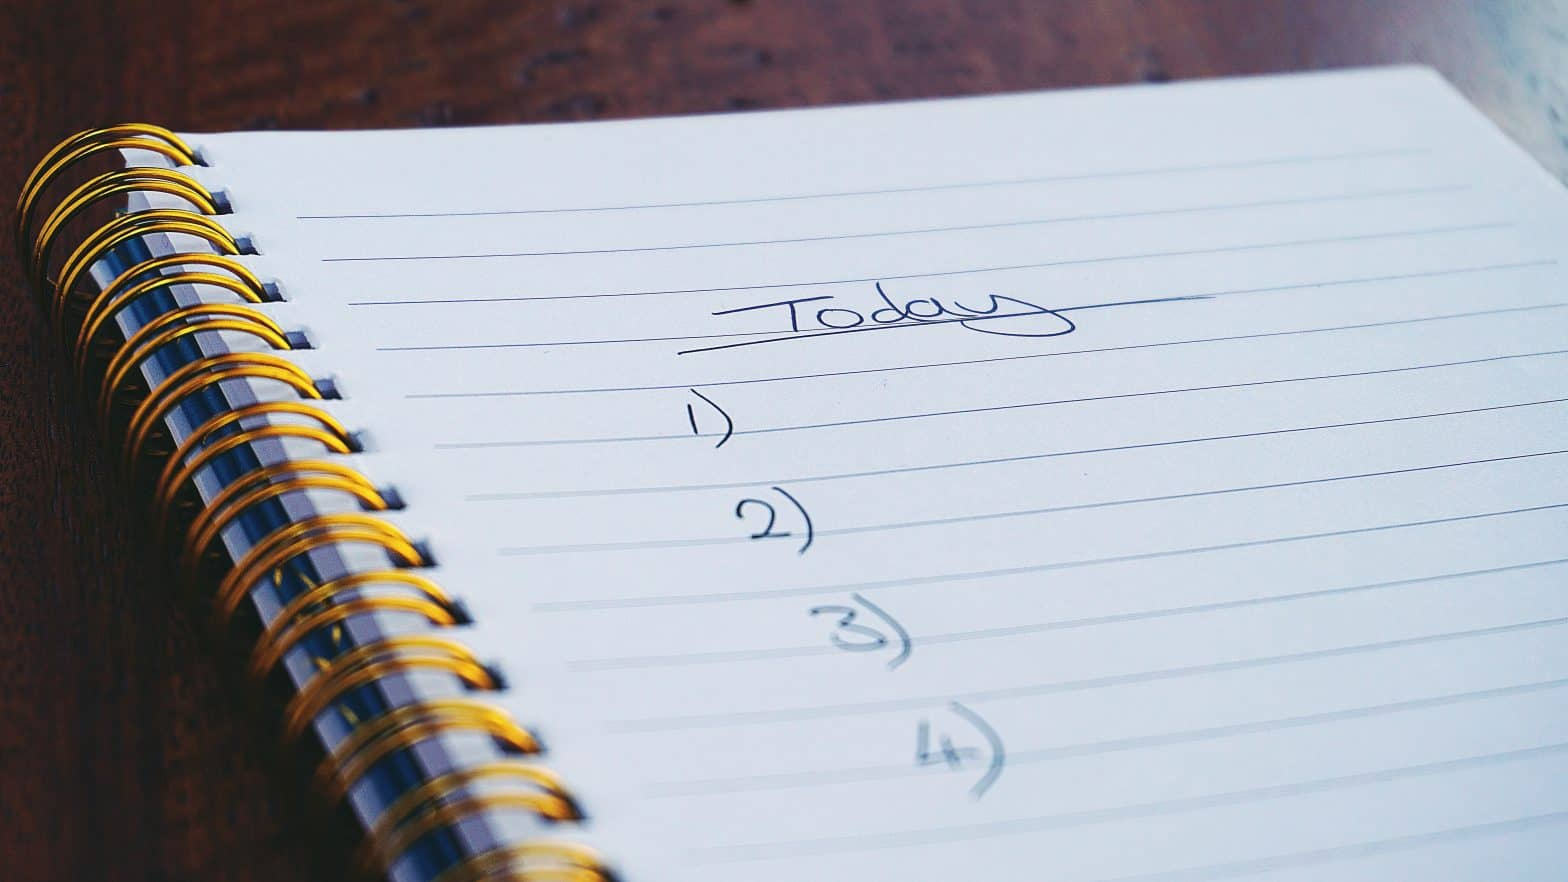 How to organize your to-do list? A notebook with a blank to-do list.